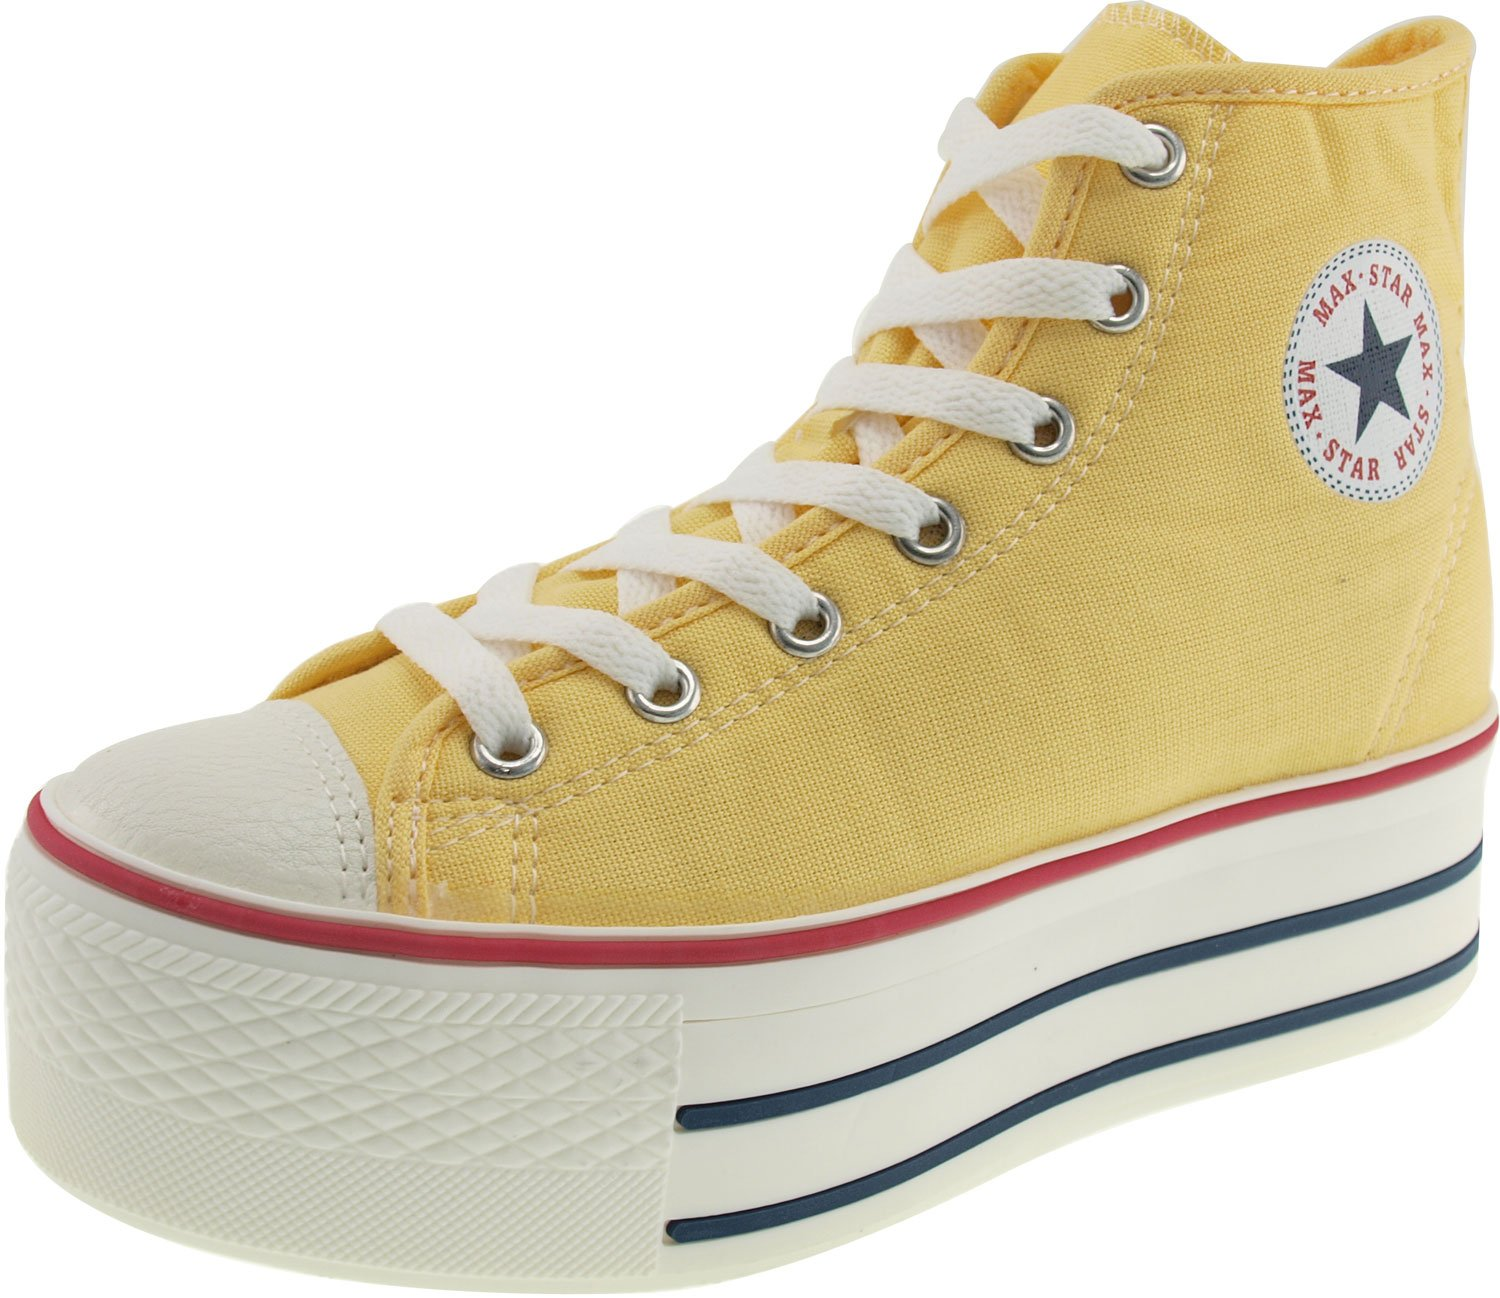 Maxstar Women's C50 7 Holes Zipper Platform Canvas High Top Sneakers B00NTTDYYS 10 M US|Yellow